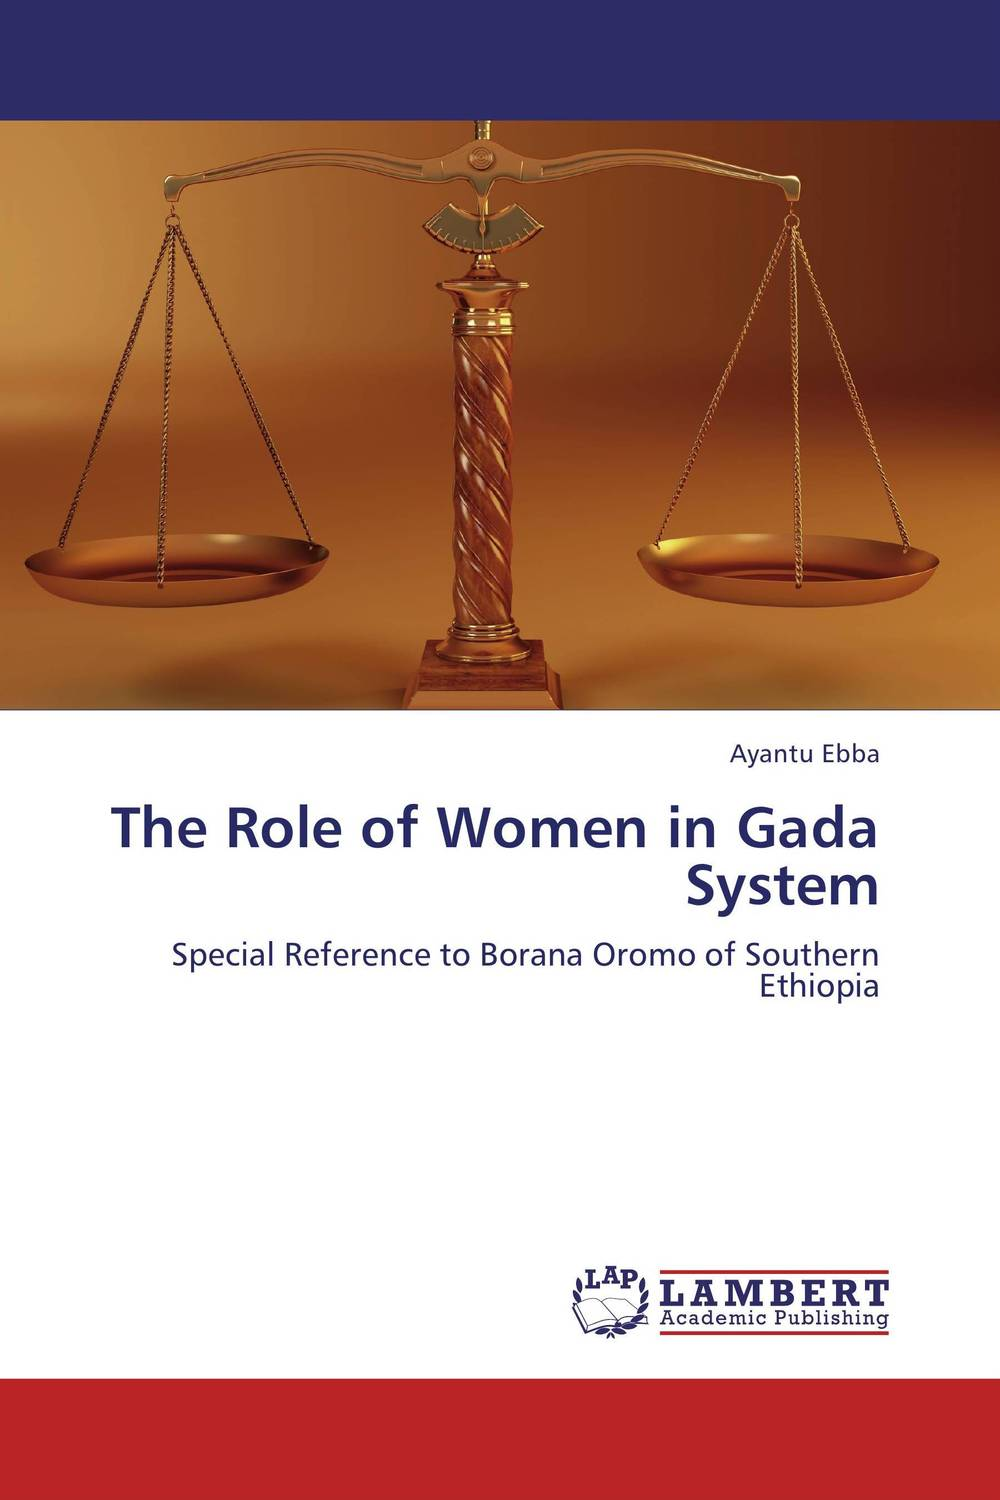 Фото The Role of Women in Gada System cervical cancer in amhara region in ethiopia